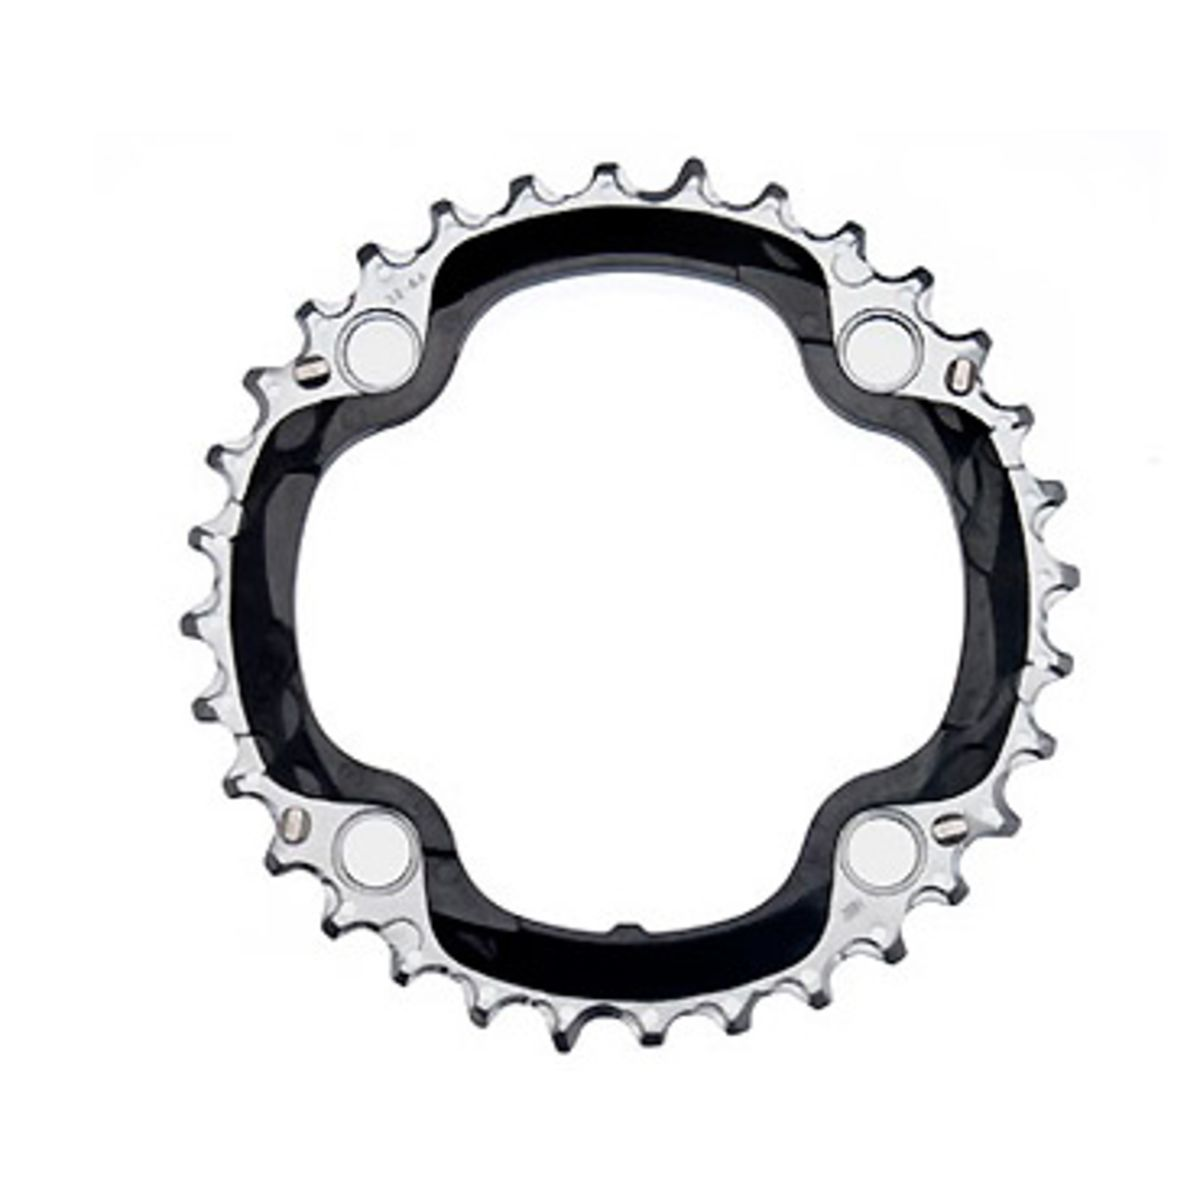 XT FC-M770 Chainring 32 Tooth